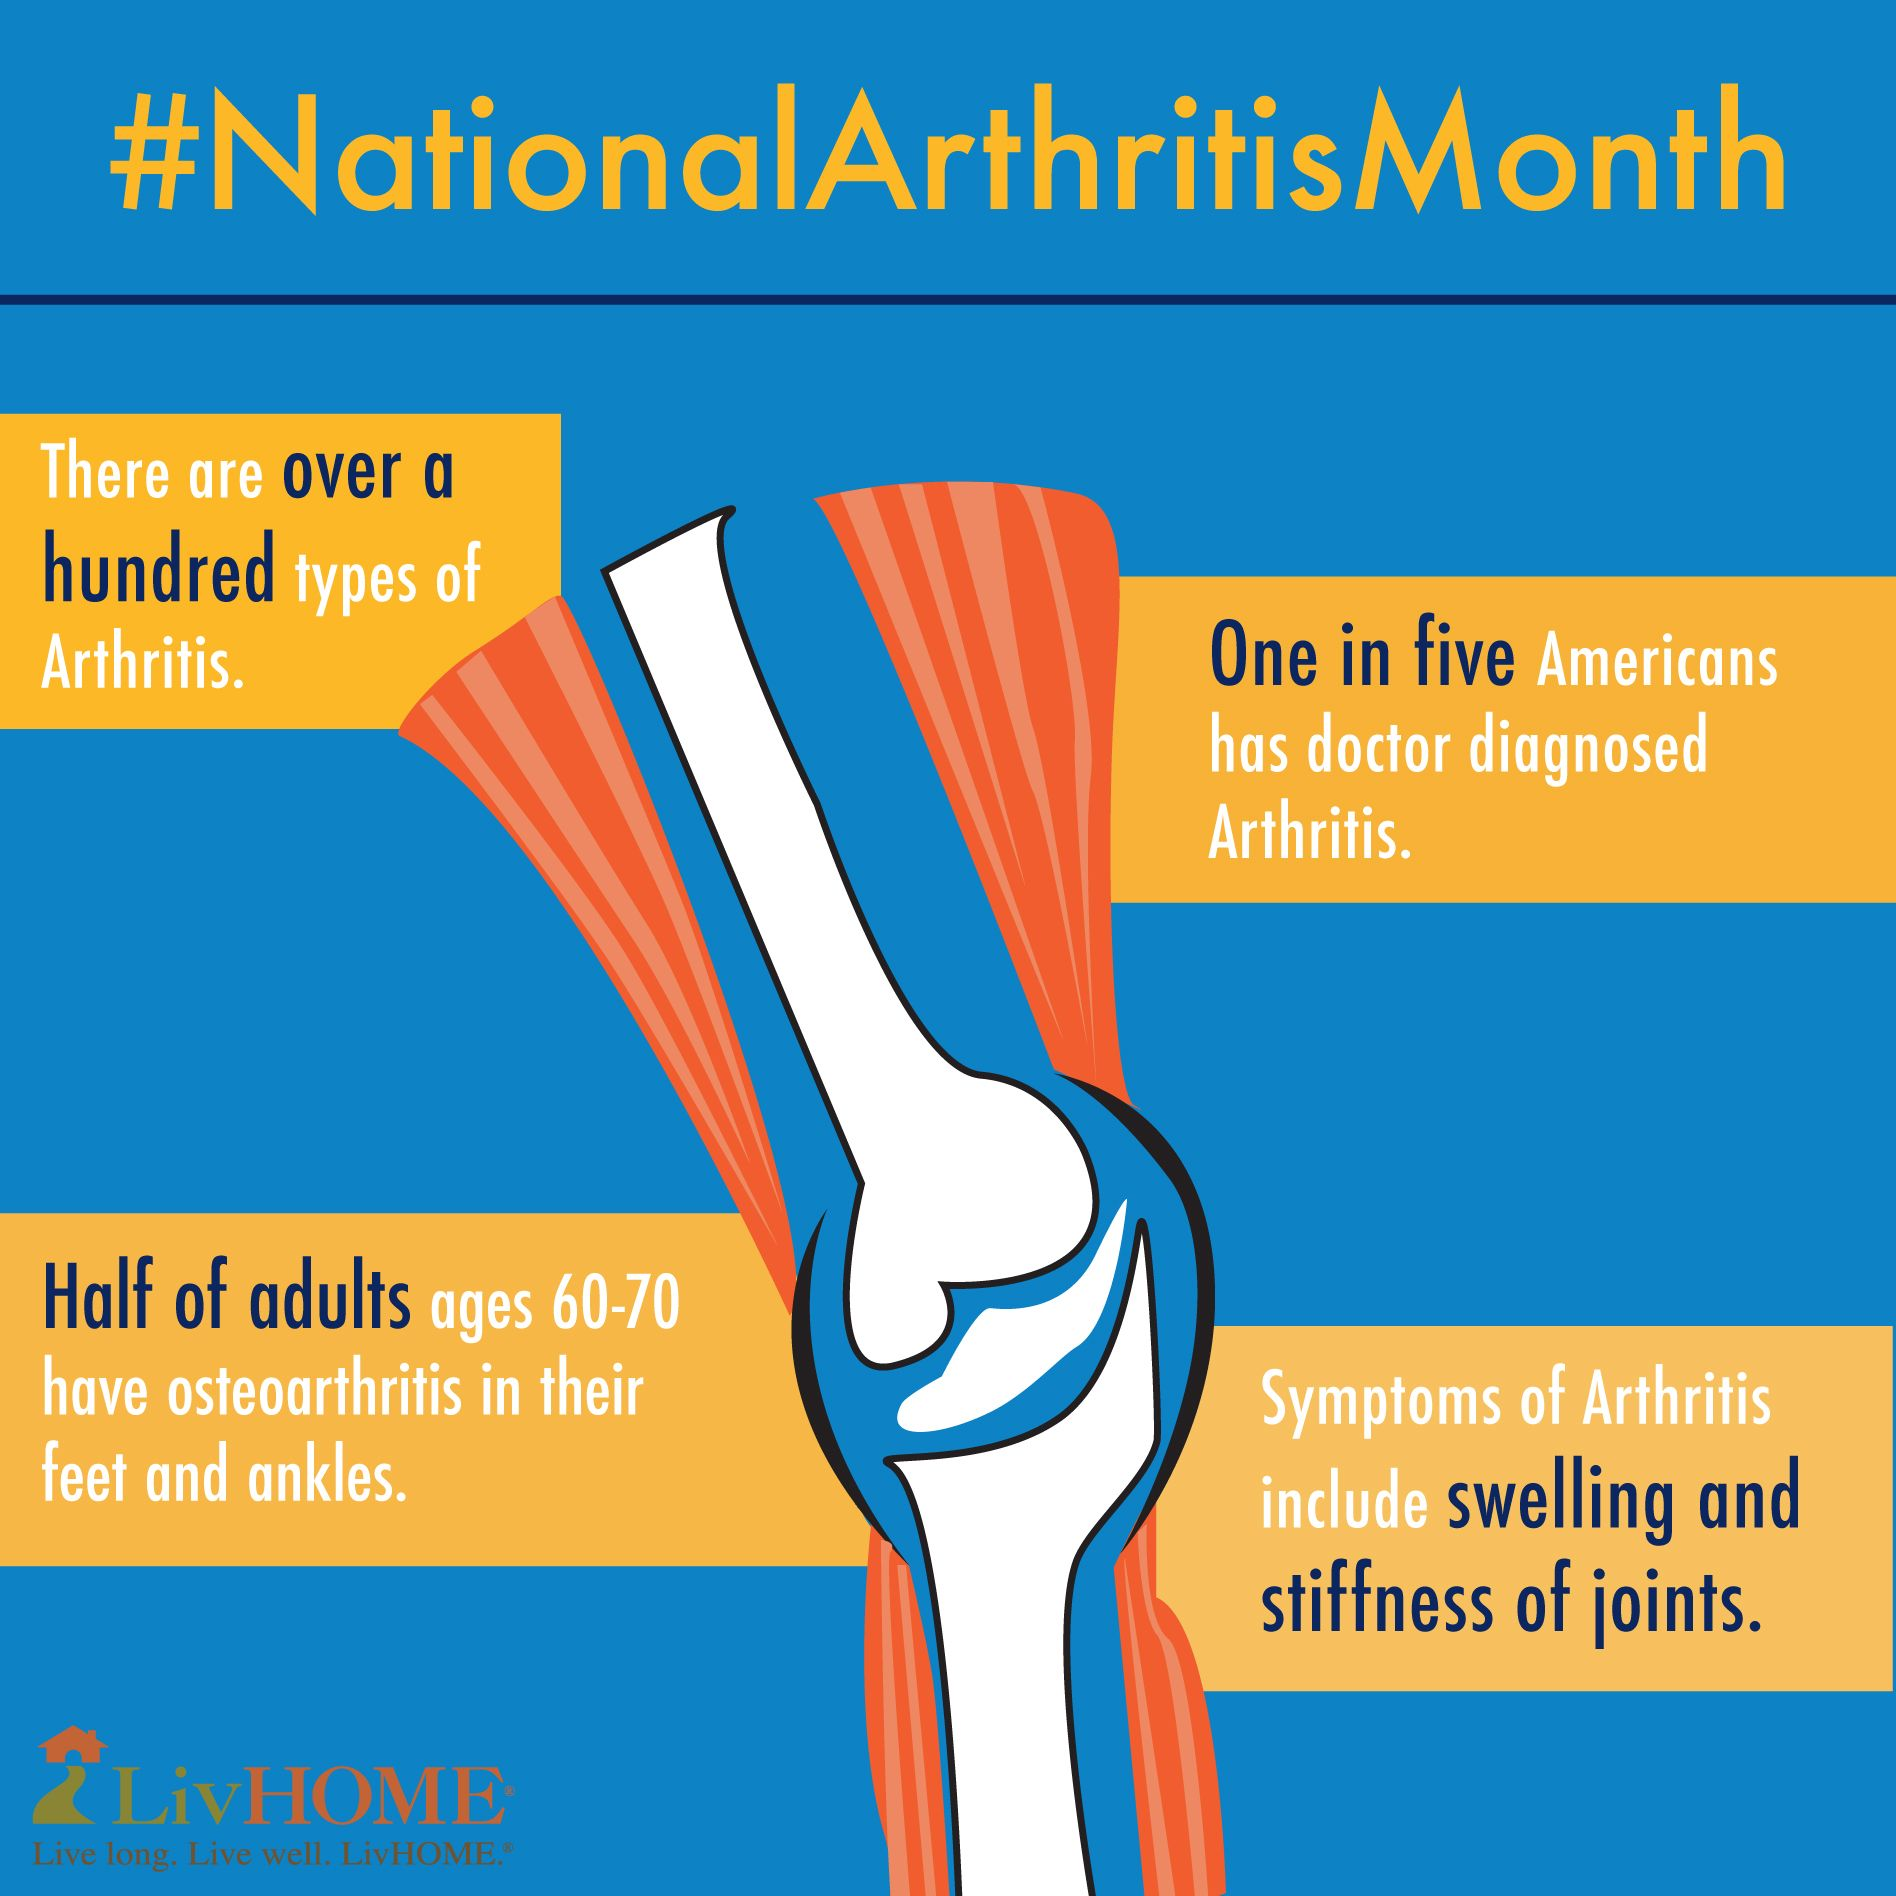 Prevalence You Take Some Time To Get Familiar With The Prevalence Of Arthritis